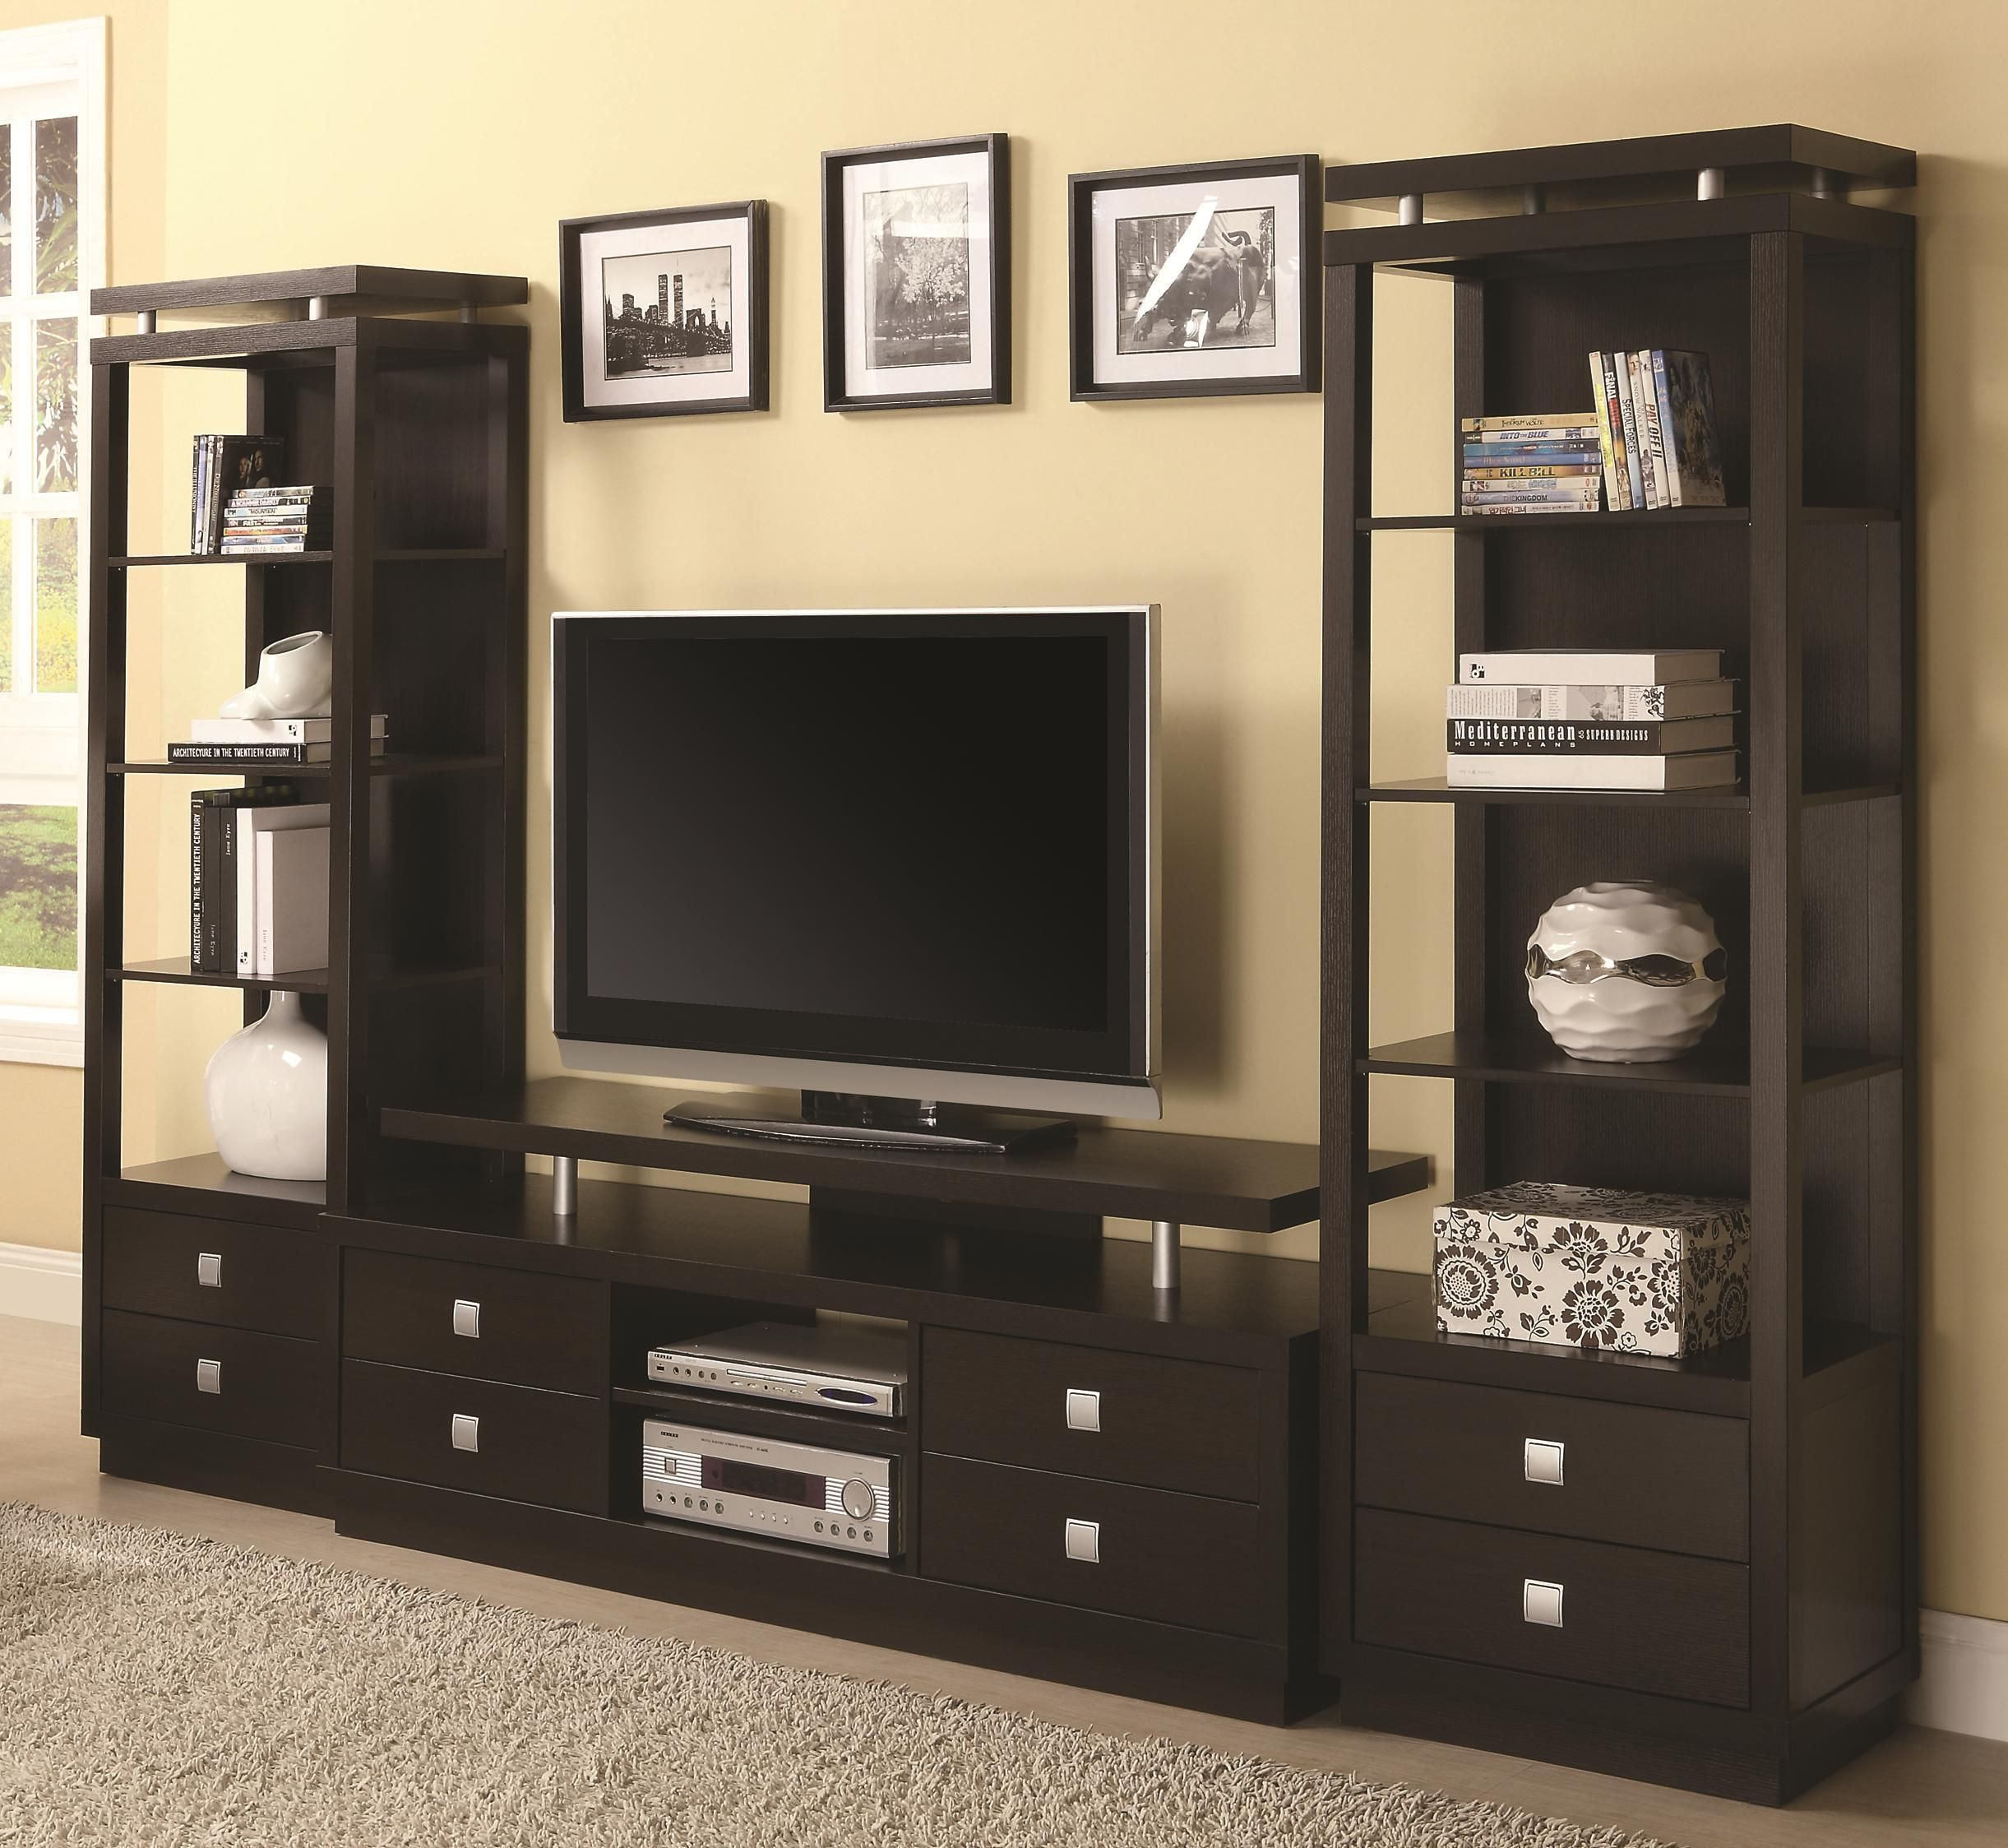 High Quality Mounted Wall Units Living Room Ideas Interior Decoration Ideas   Home Tv  Stand Furniture Designs